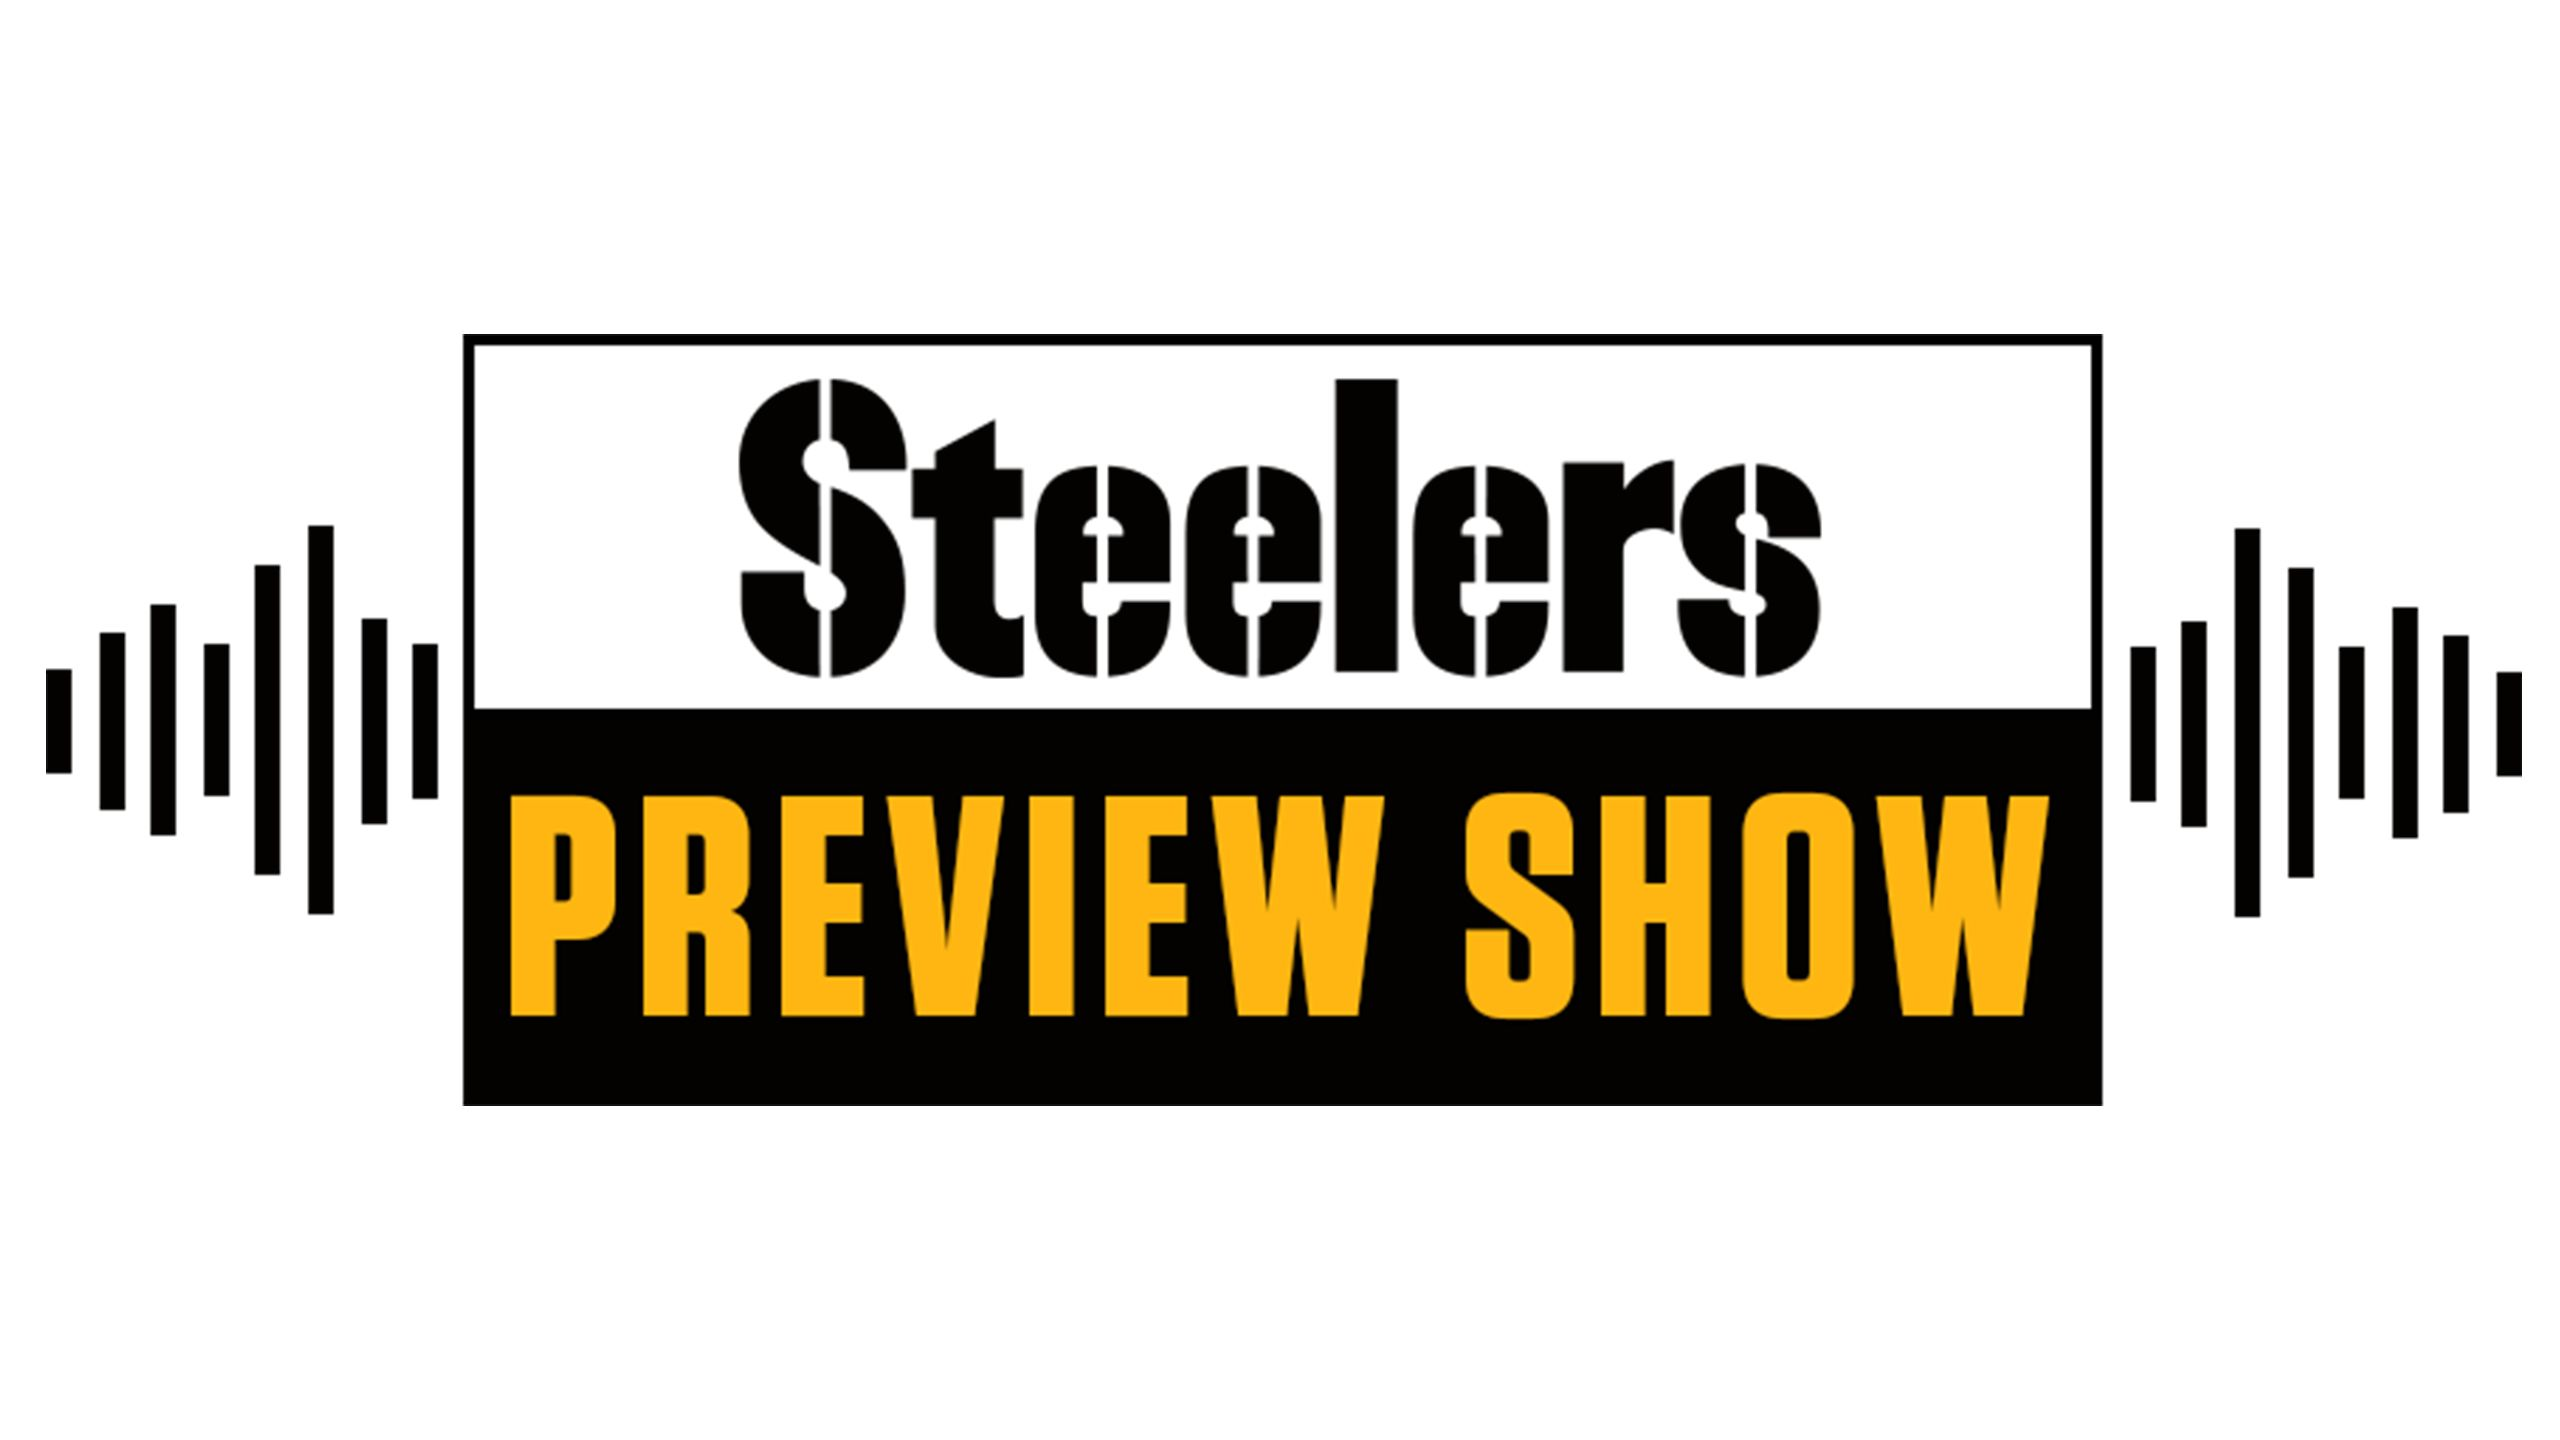 Steelers Preview Show